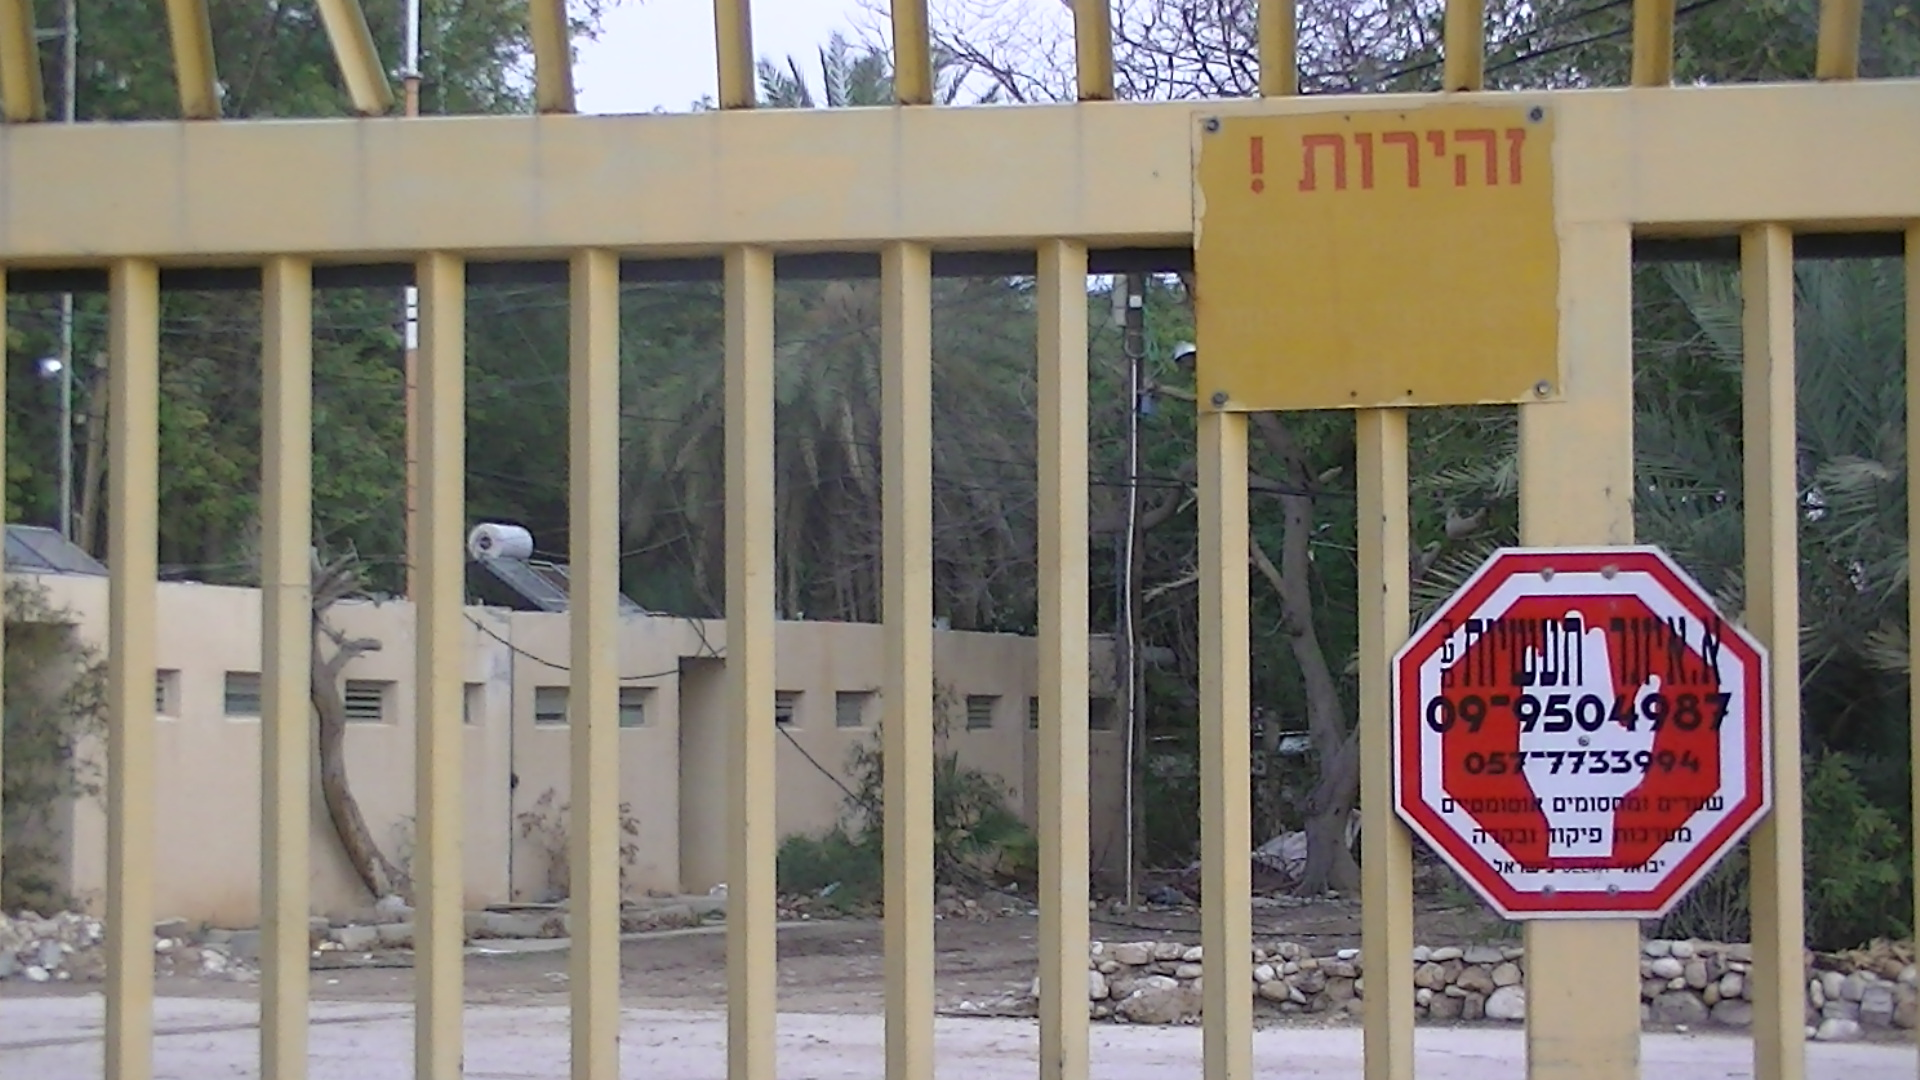 The gates of Beit Ha'Arava settlement, closed to Palestinians except settlement workers - photo taken by Corporate Watch, January 2013